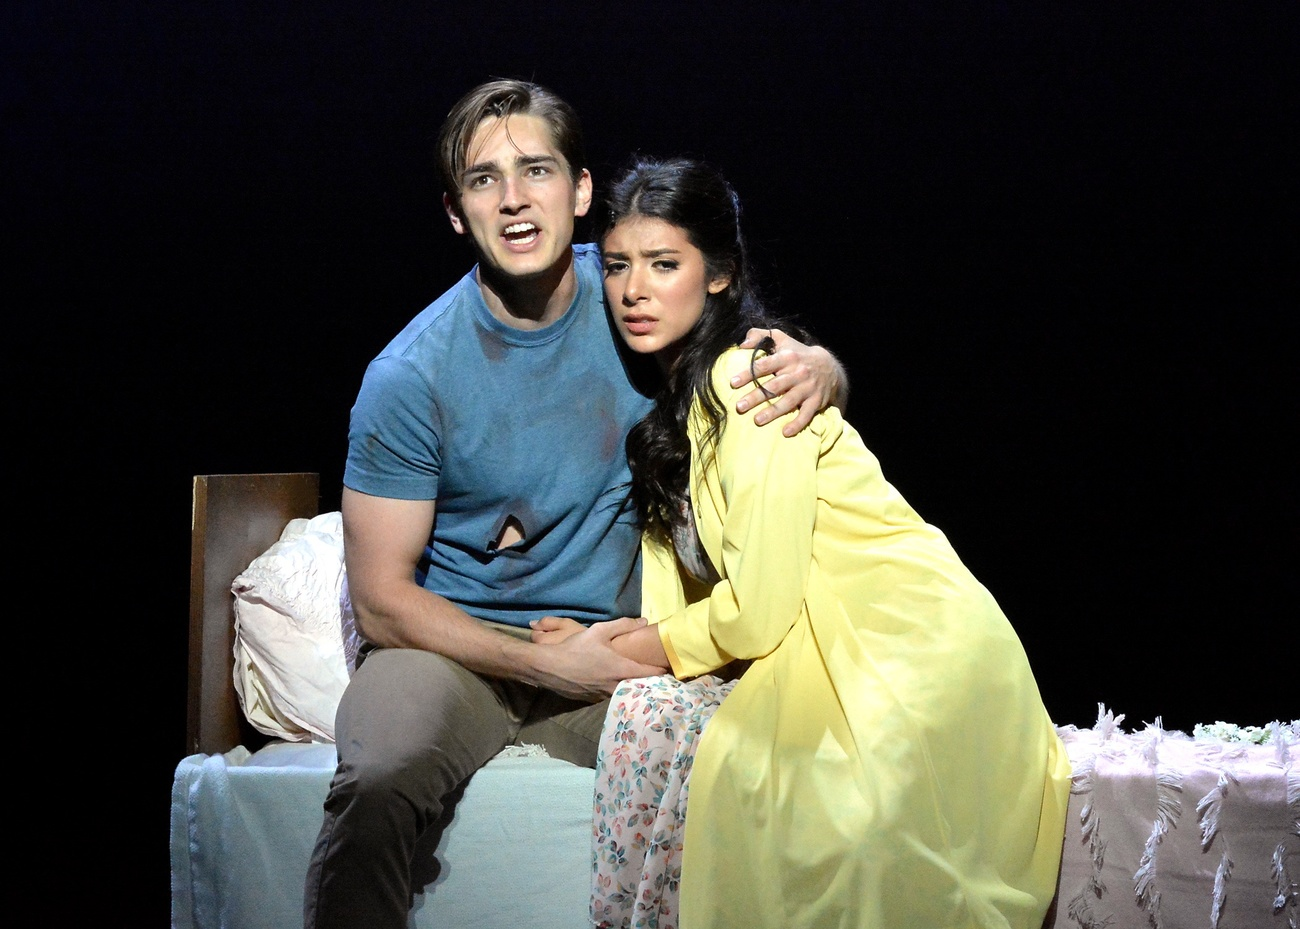 BWW Review: WEST SIDE STORY at 5-Star Theatricals